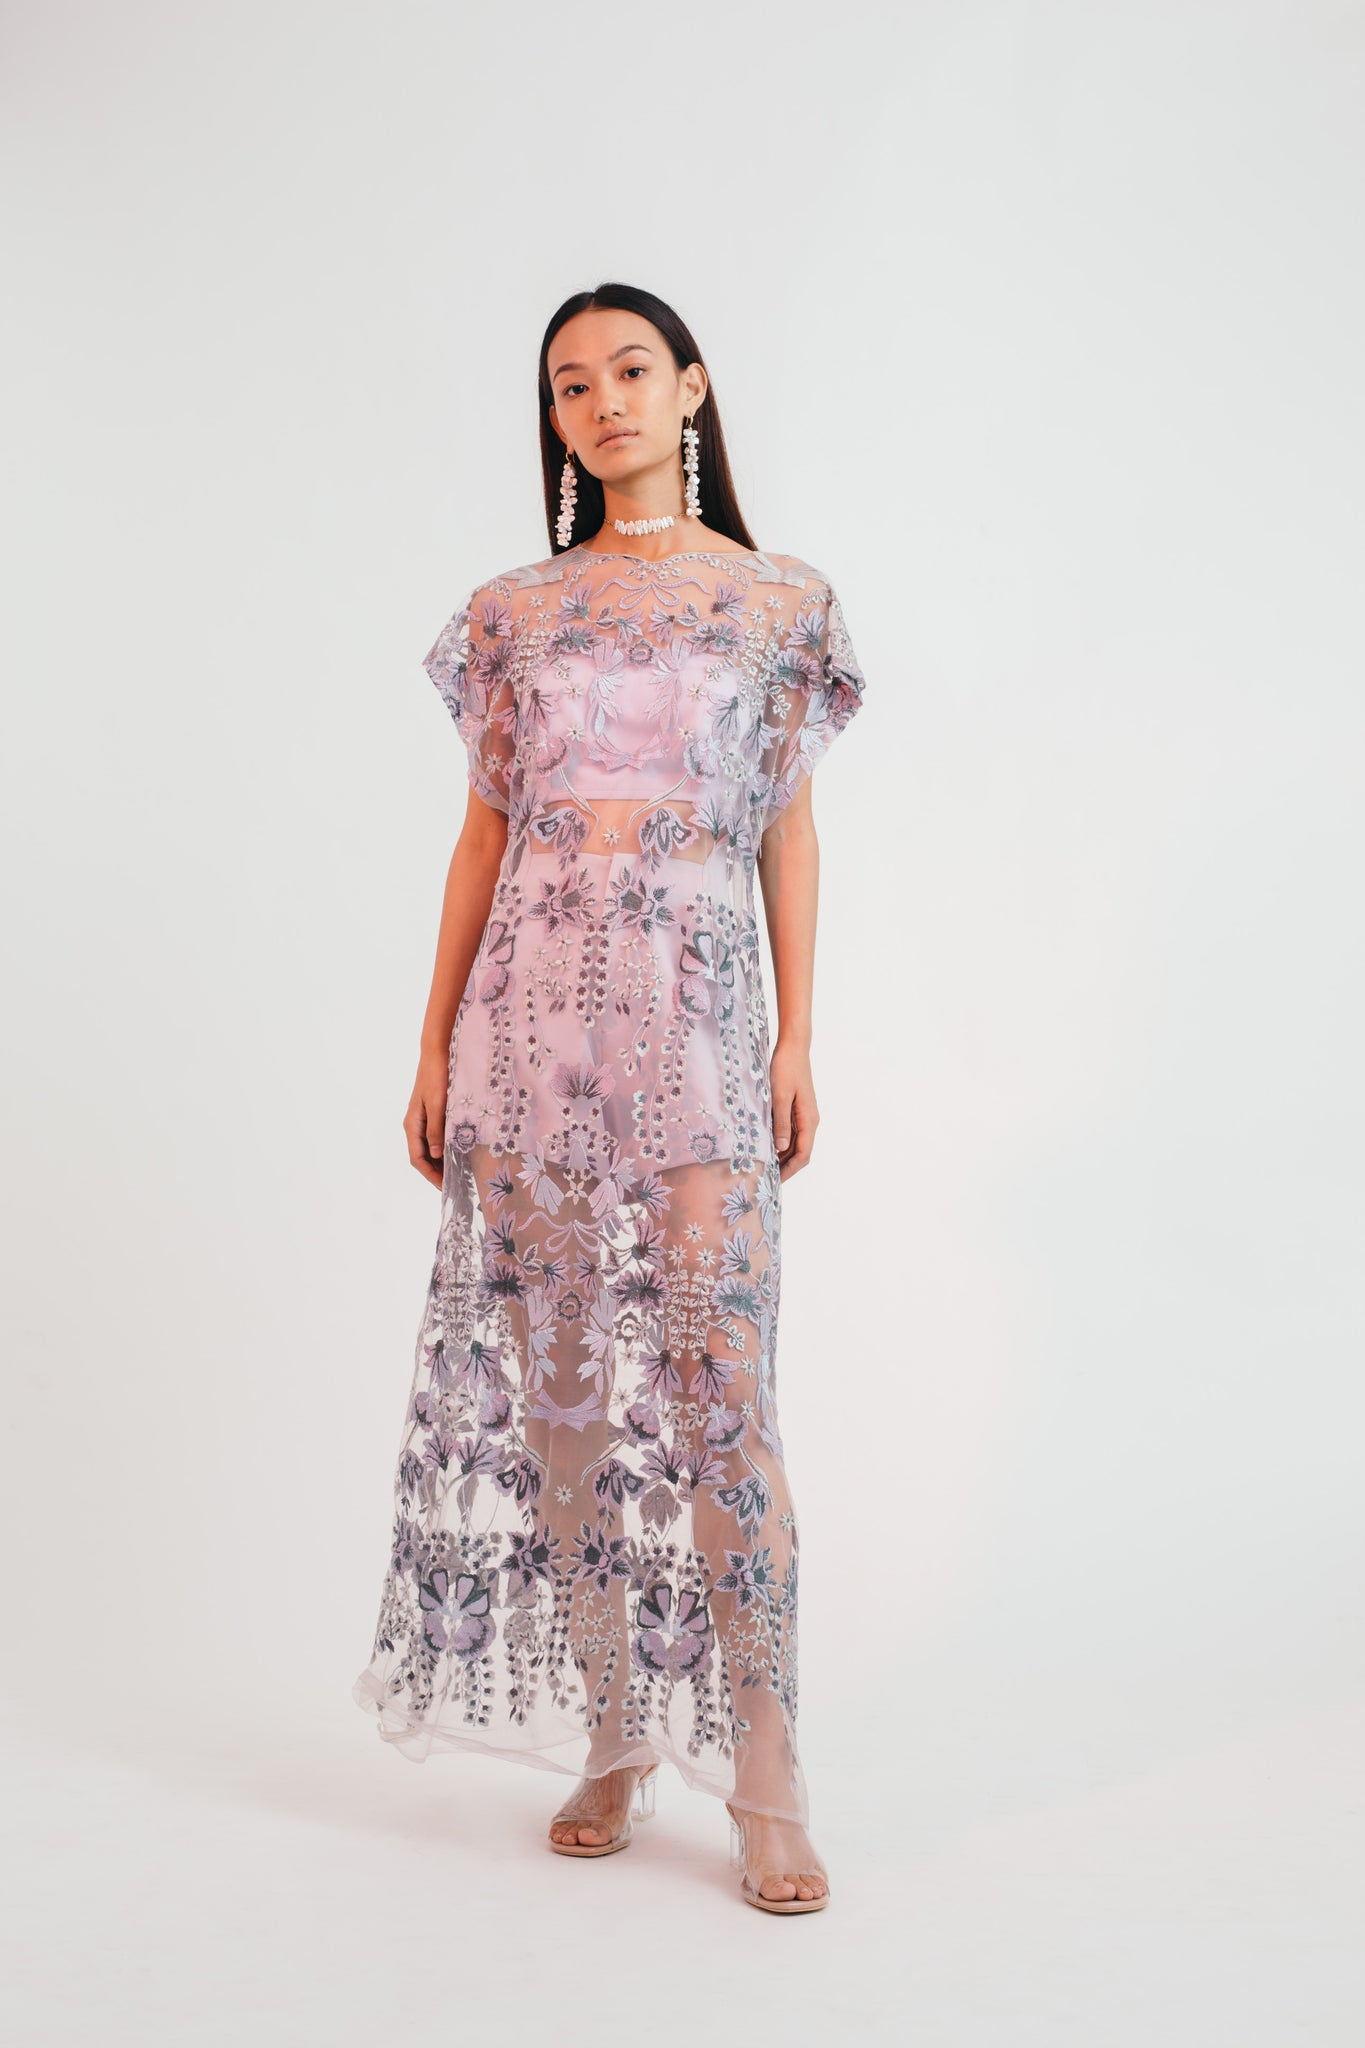 Mystical Meadow Sheer Dress with Shorts - Bhaavya Bhatnagar